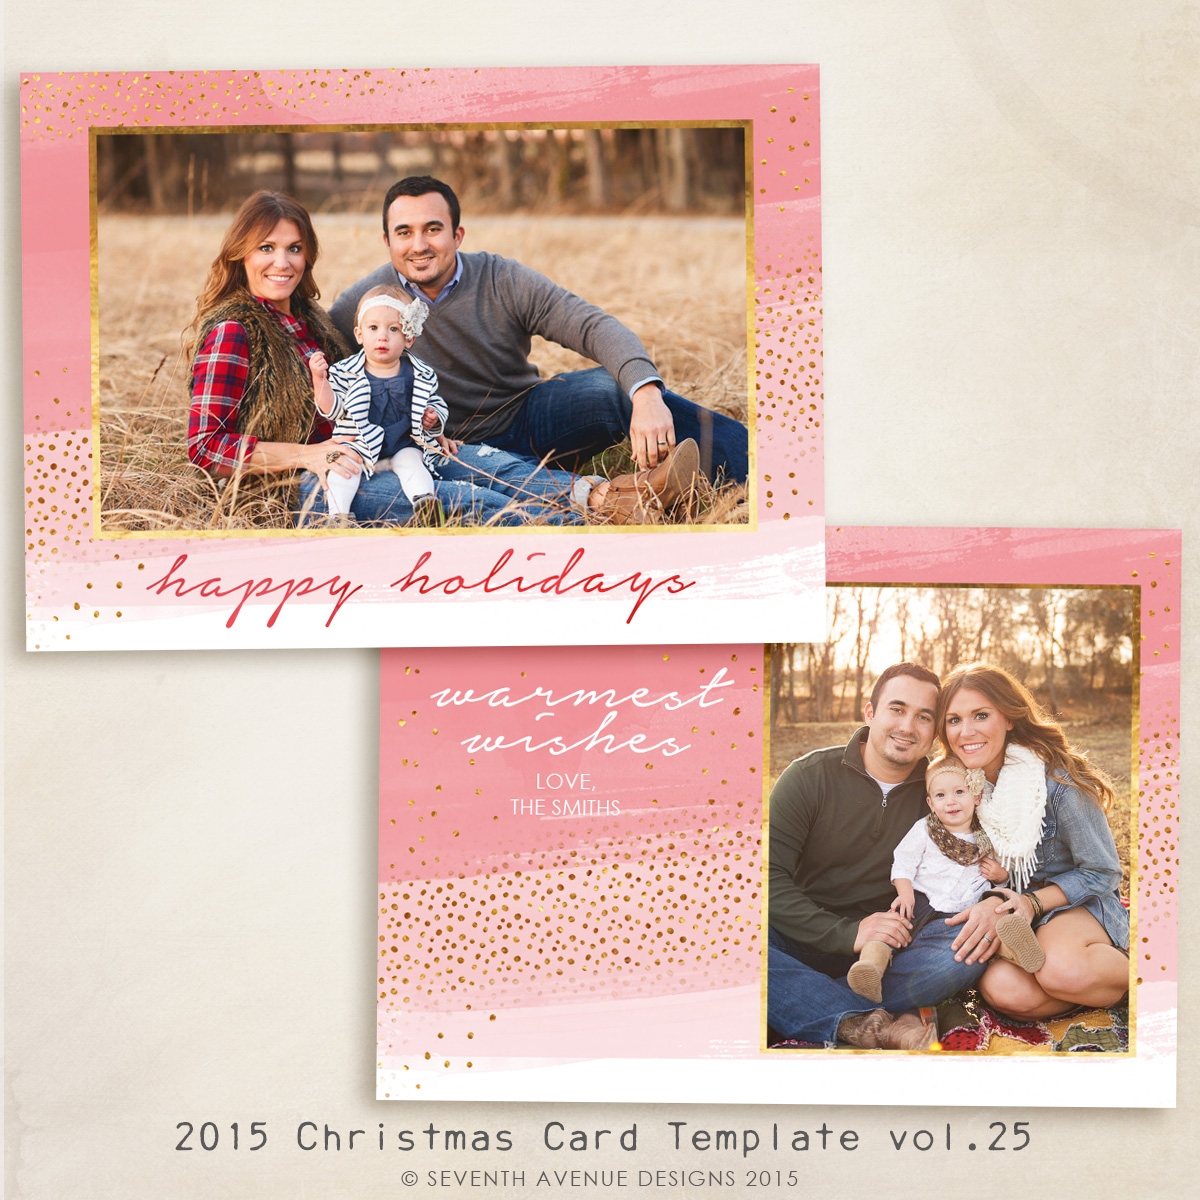 2015 Christmas Card Templates vol.25 -- 7x5 inch card template